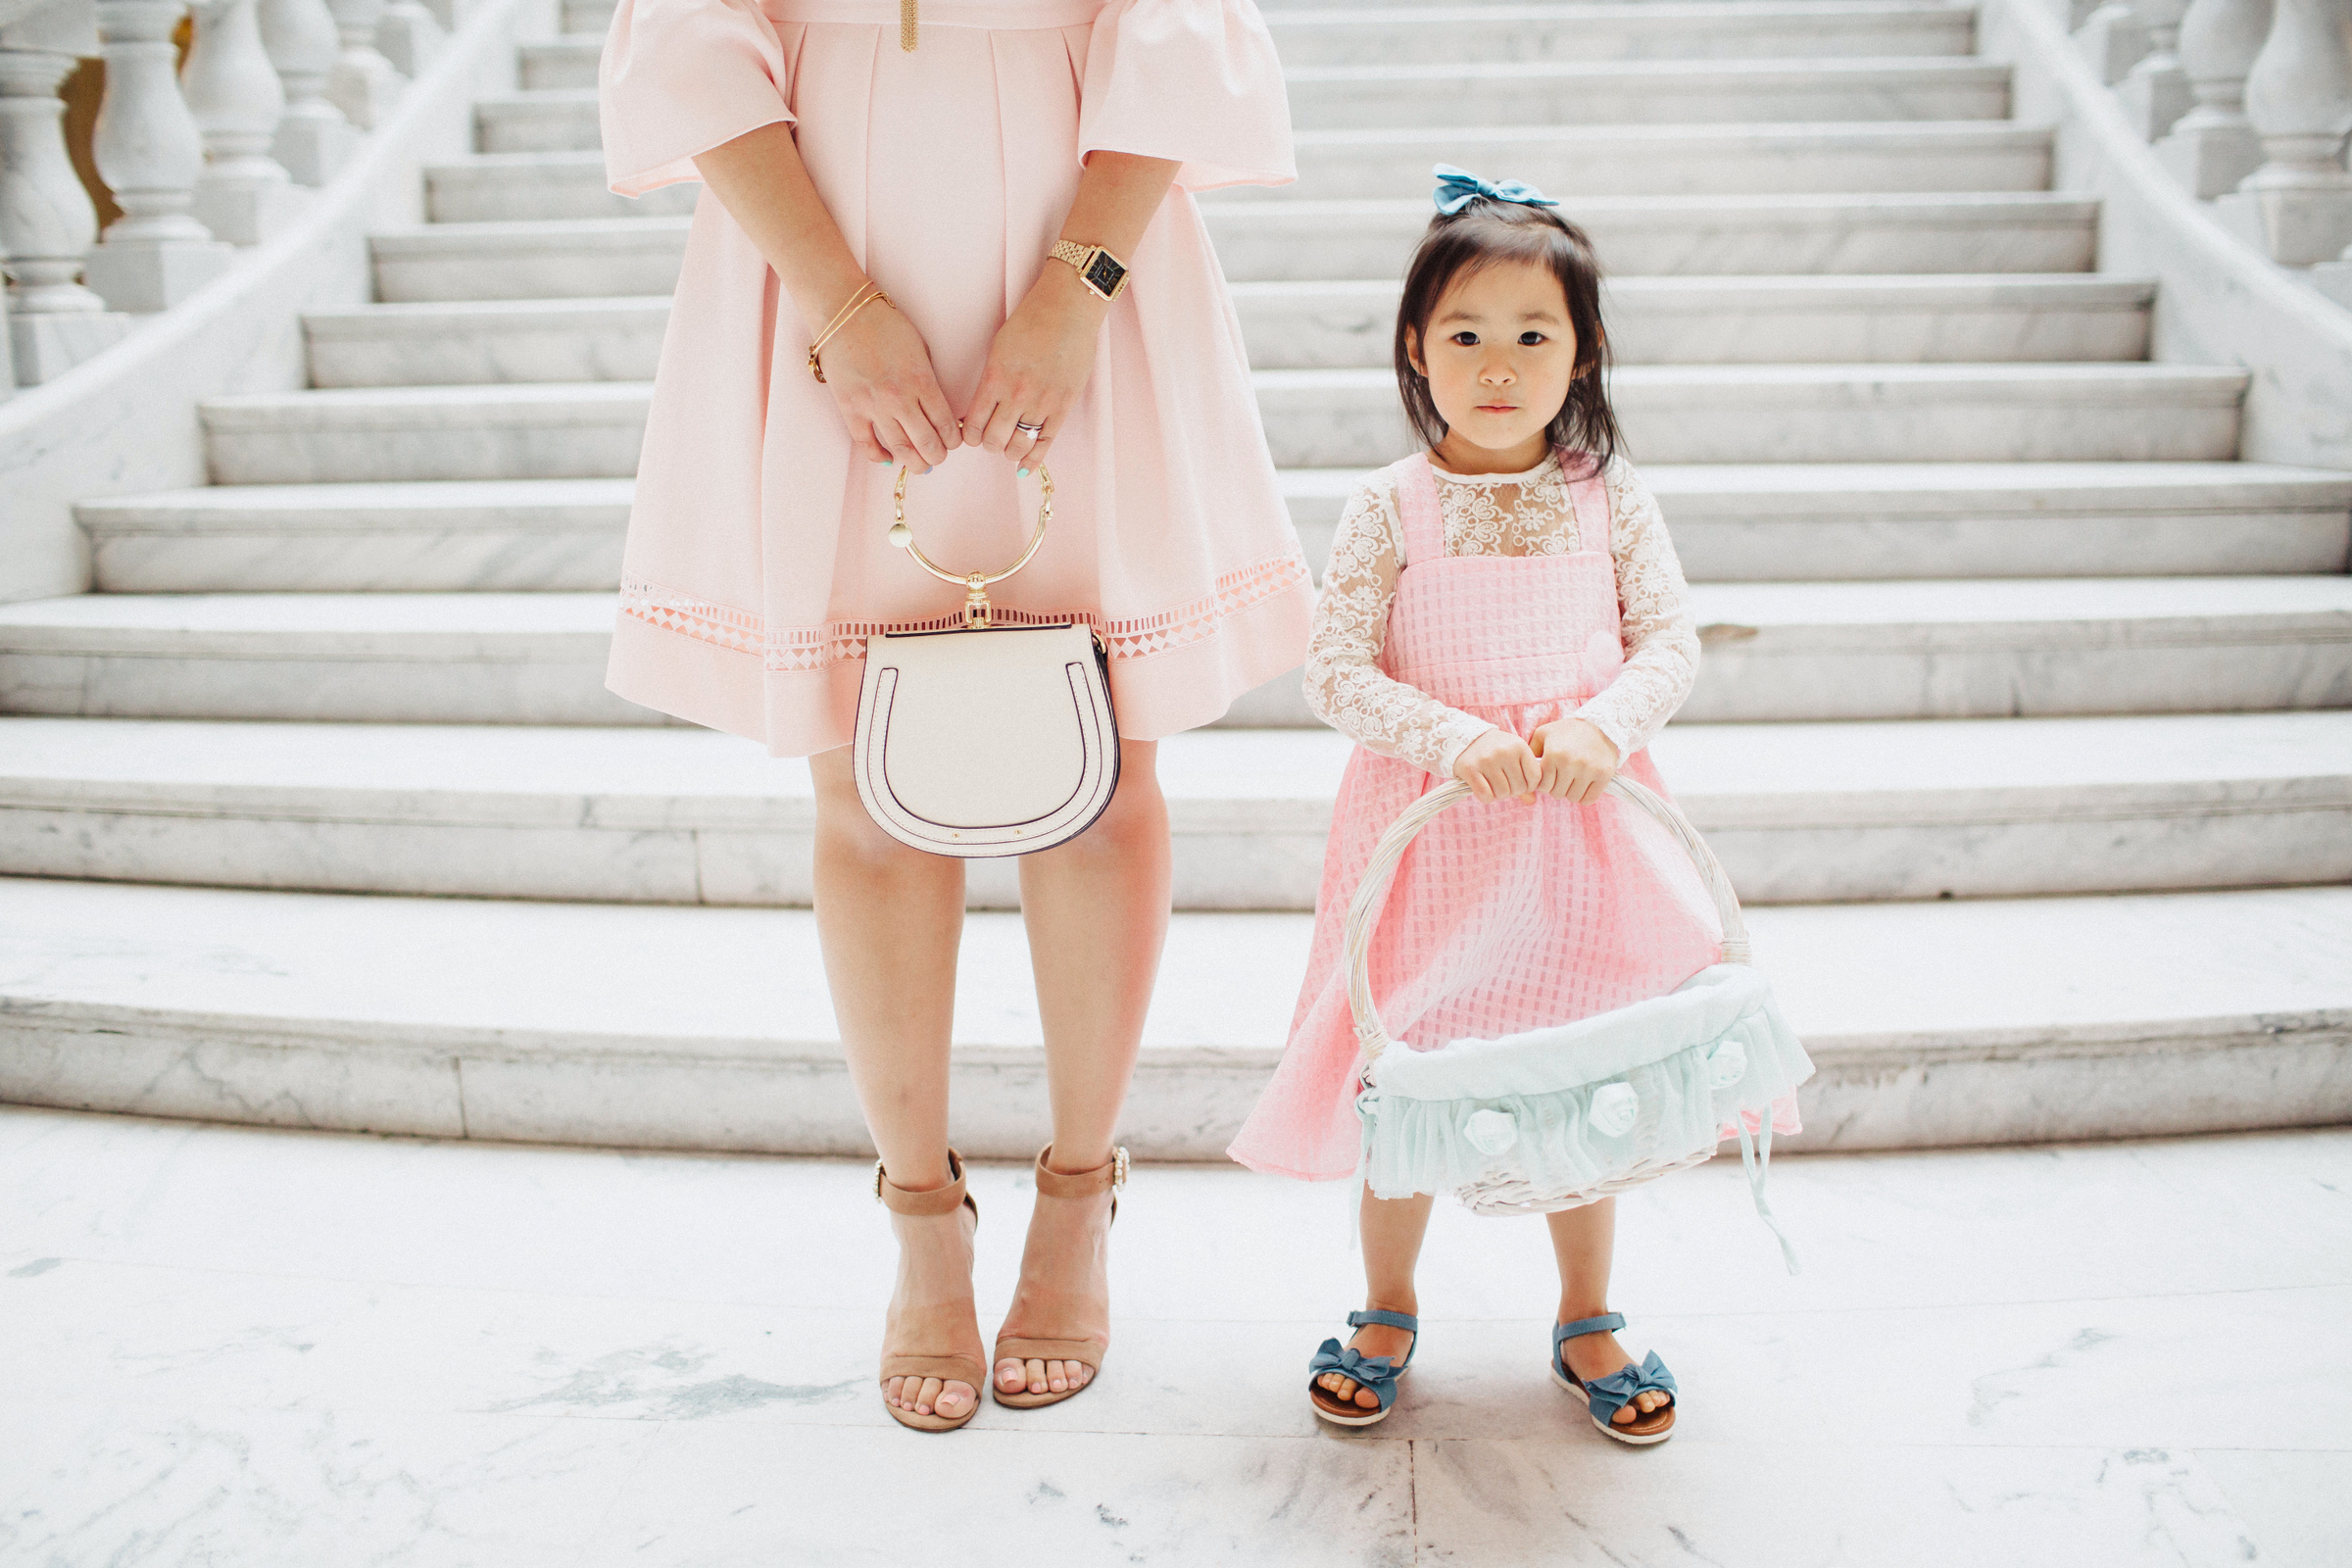 Mommy and me Easter dresses - Affordable Easter Outfits For Girls by popular Utah fashion blogger Sandy A La Mode